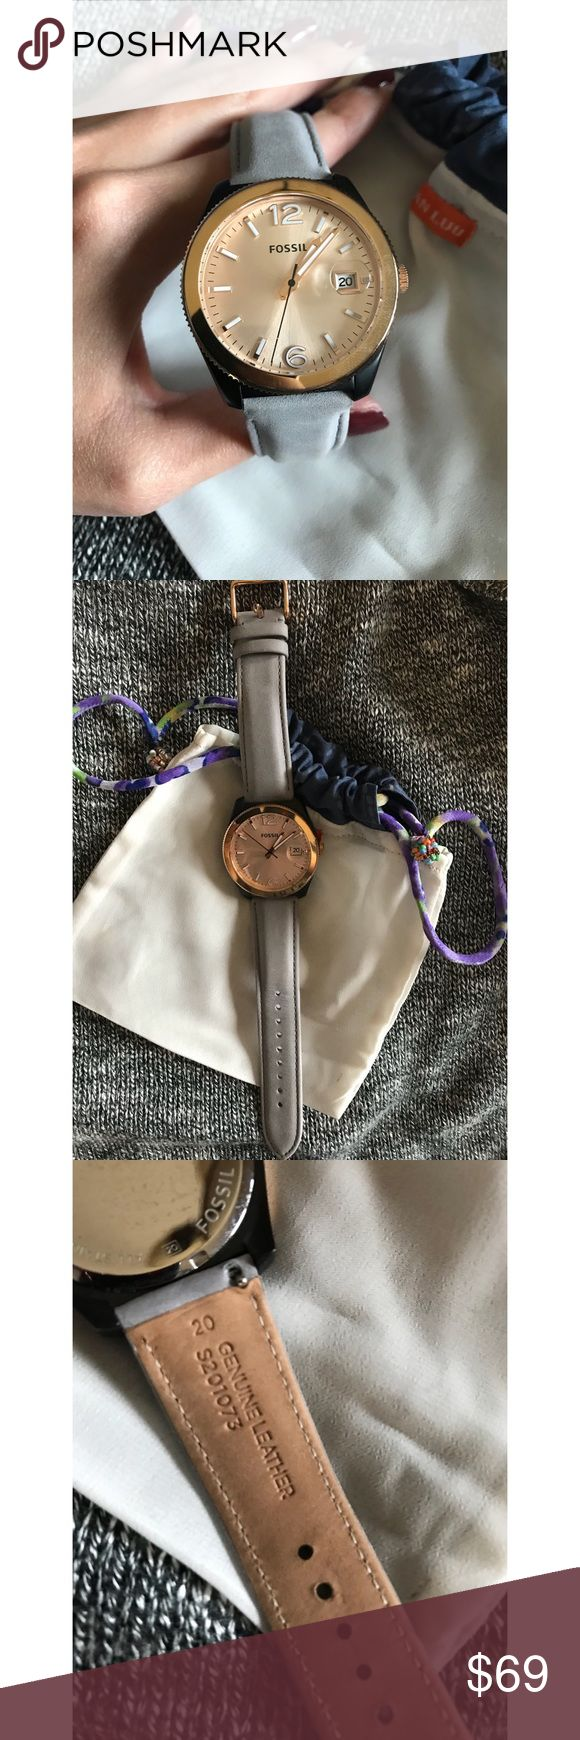 Women's Rose gold fossil watch. Only worn 2x. Rose gold fossil watch. So pretty! I don't wear it much since my apple iwatch. You can change out bands, a black one or tan one would also look great with this- really versatile piece and like new! Fossil Accessories Watches